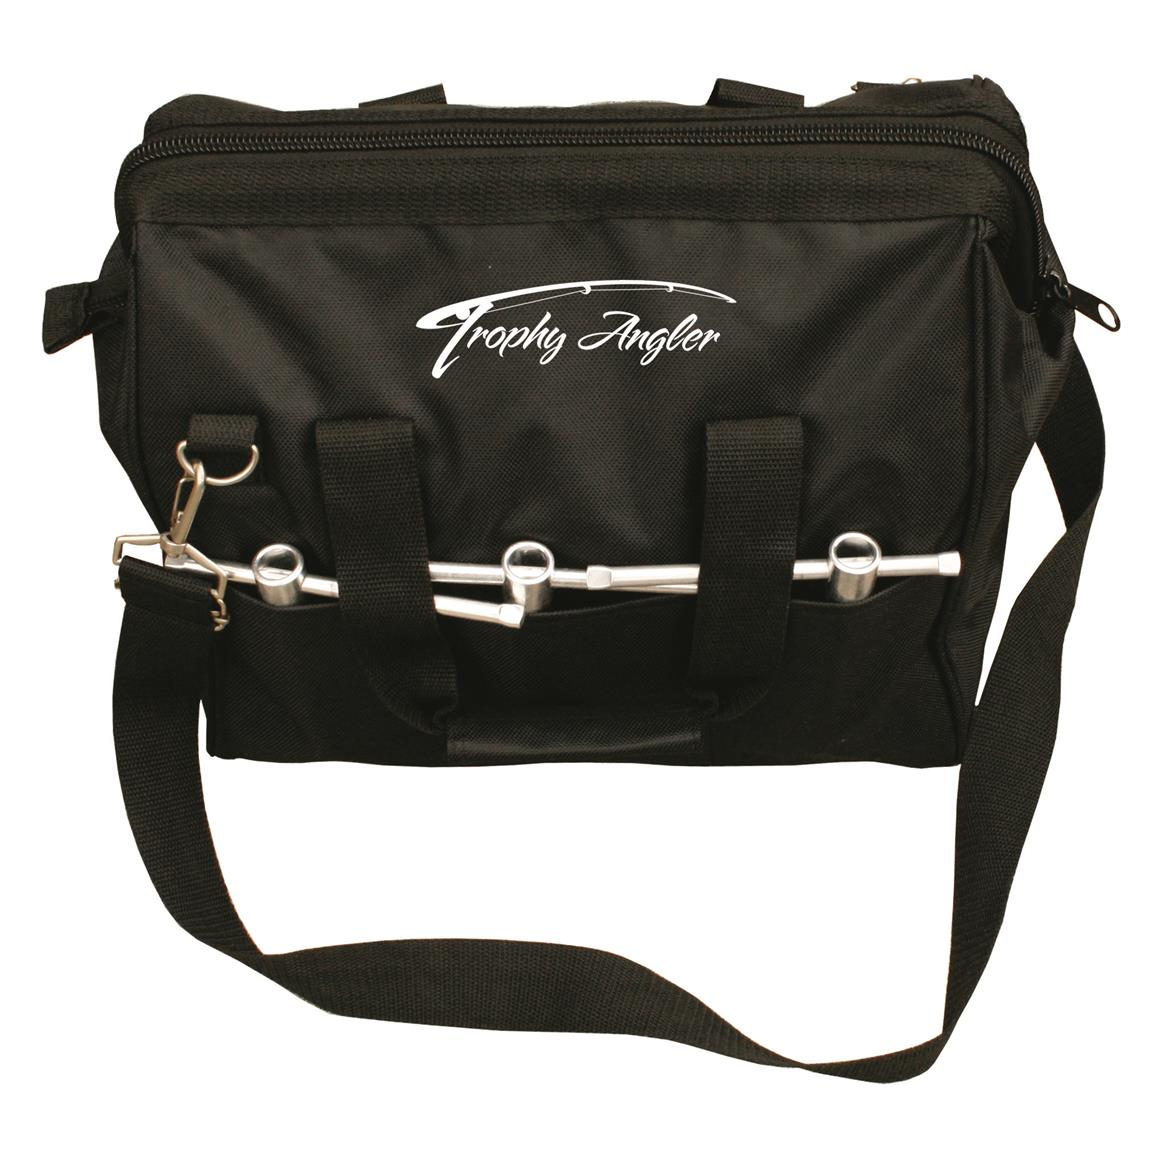 Heavy-duty handle and adjustable shoulder strap for secure carry